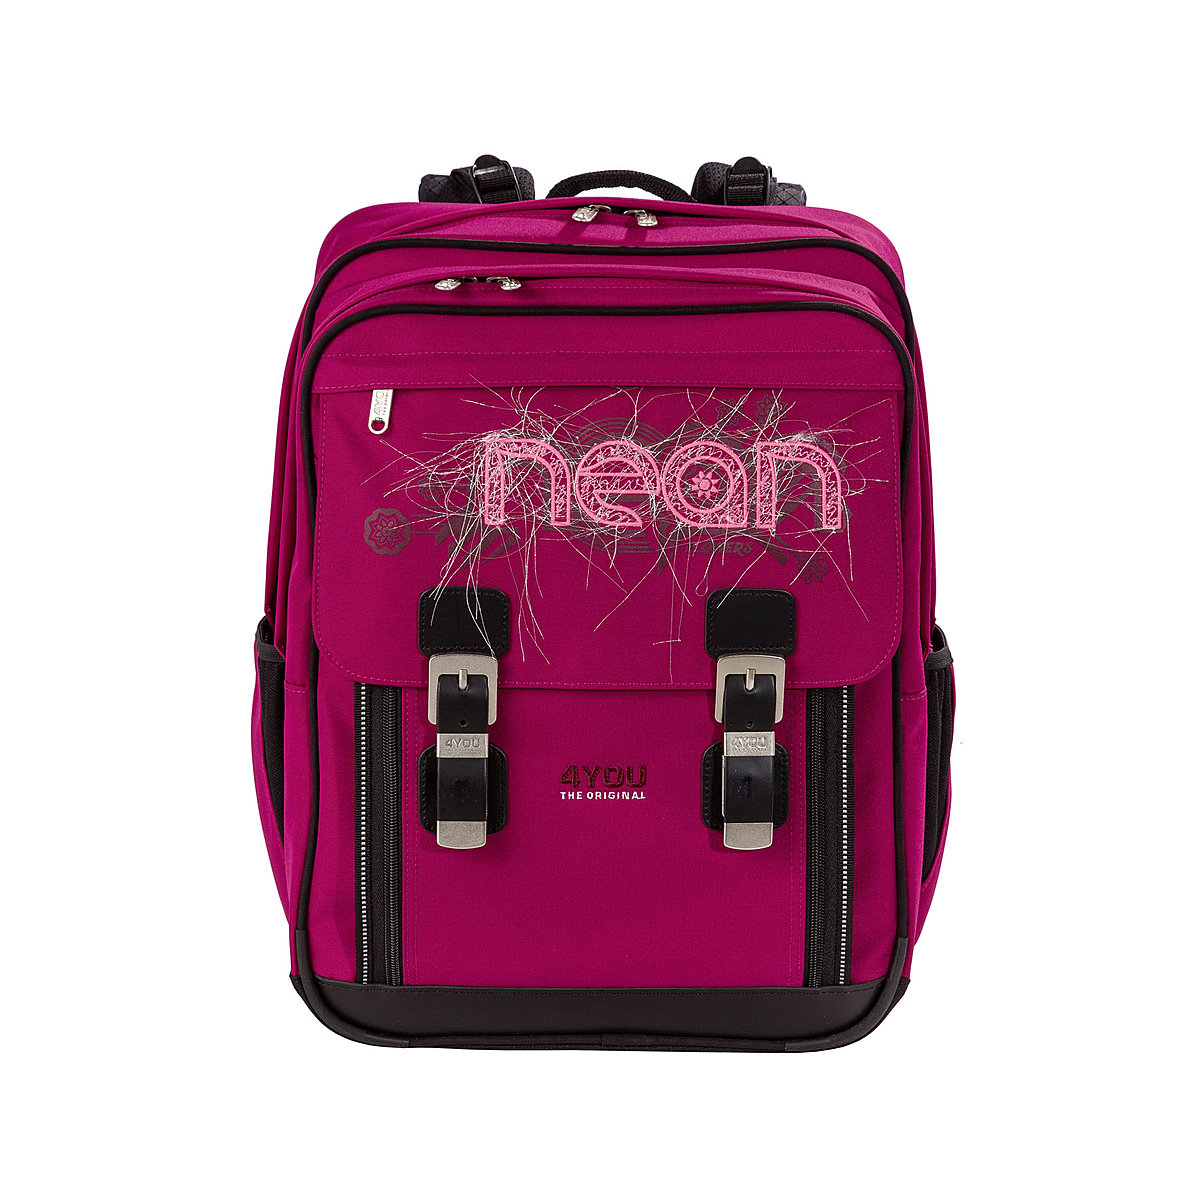 4you schulrucksack classic plus neon 233 m dchen. Black Bedroom Furniture Sets. Home Design Ideas